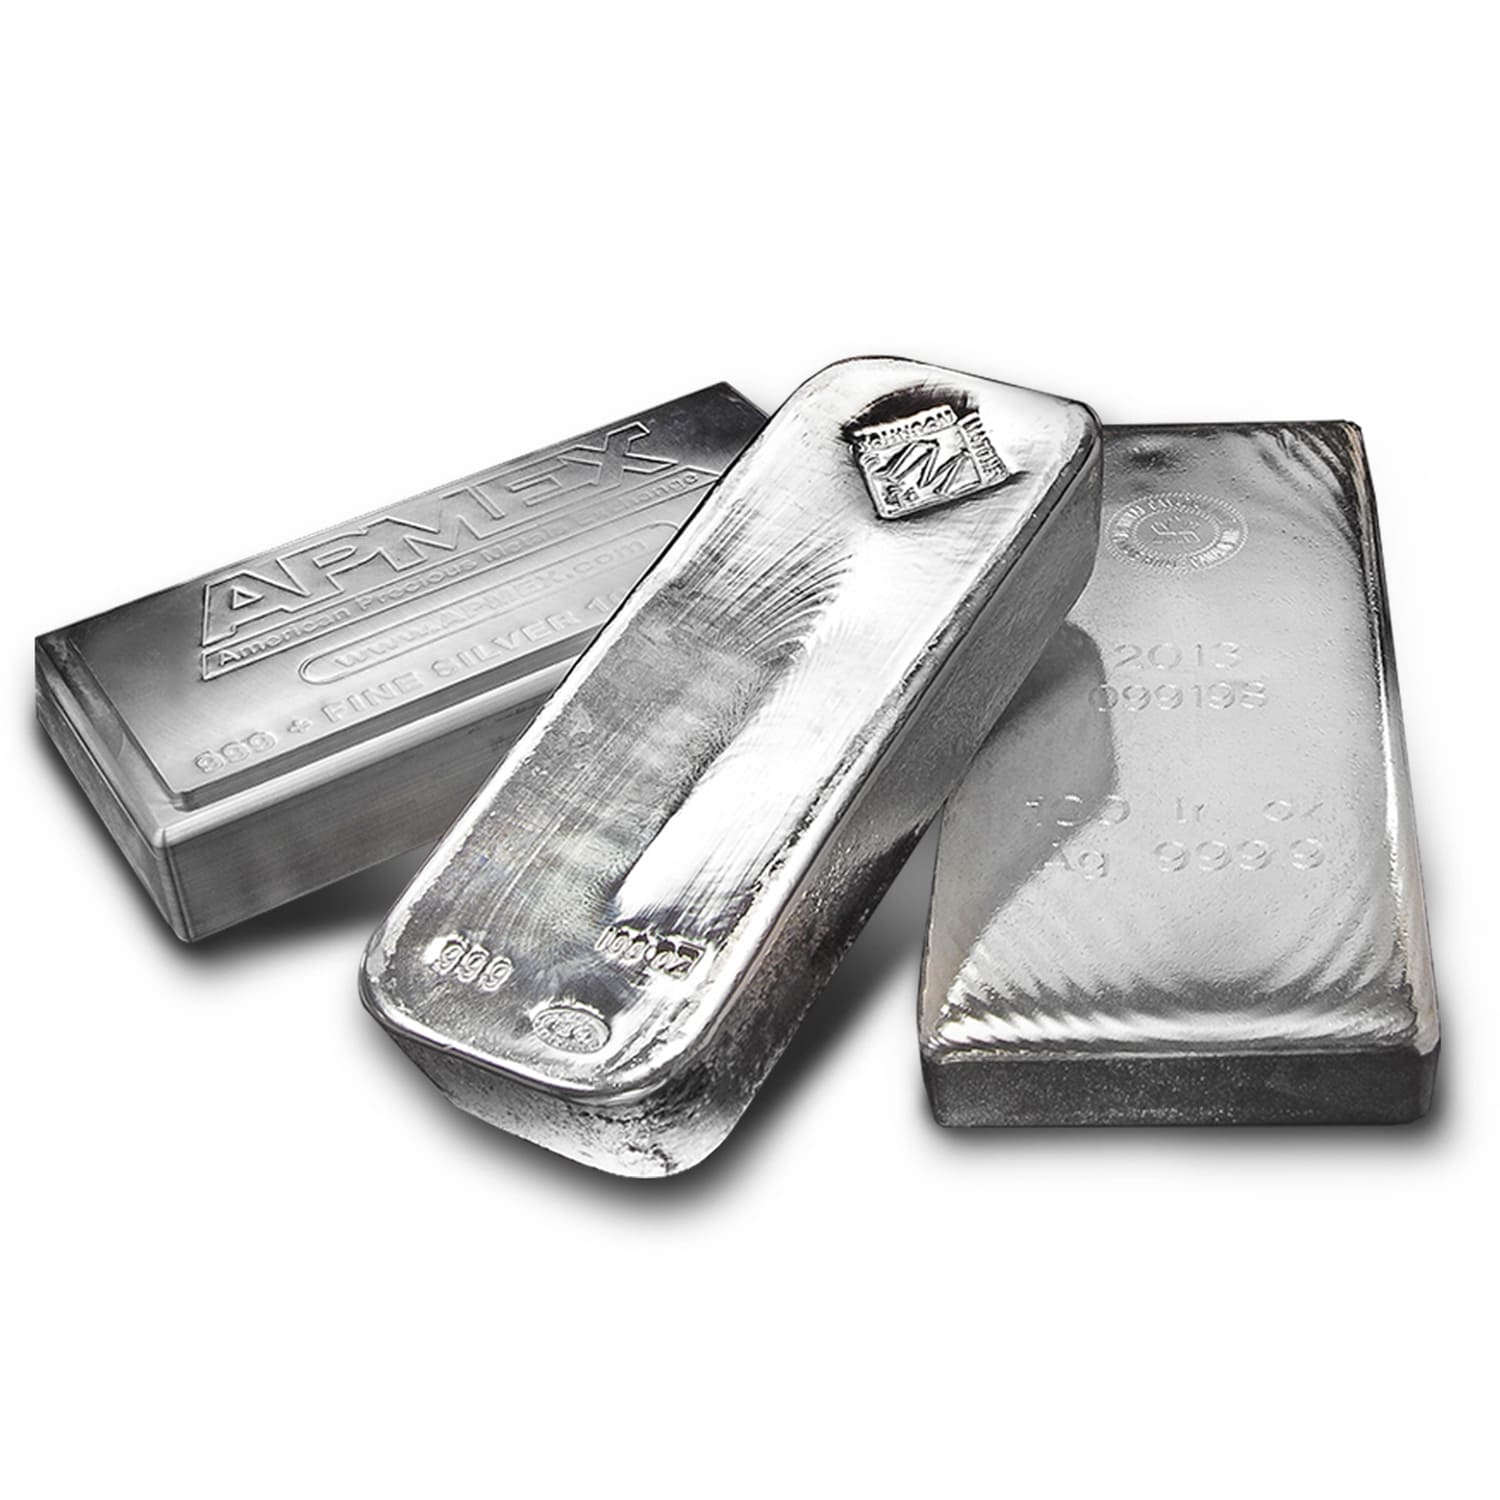 102.85 oz Silver Bar - Secondary Market